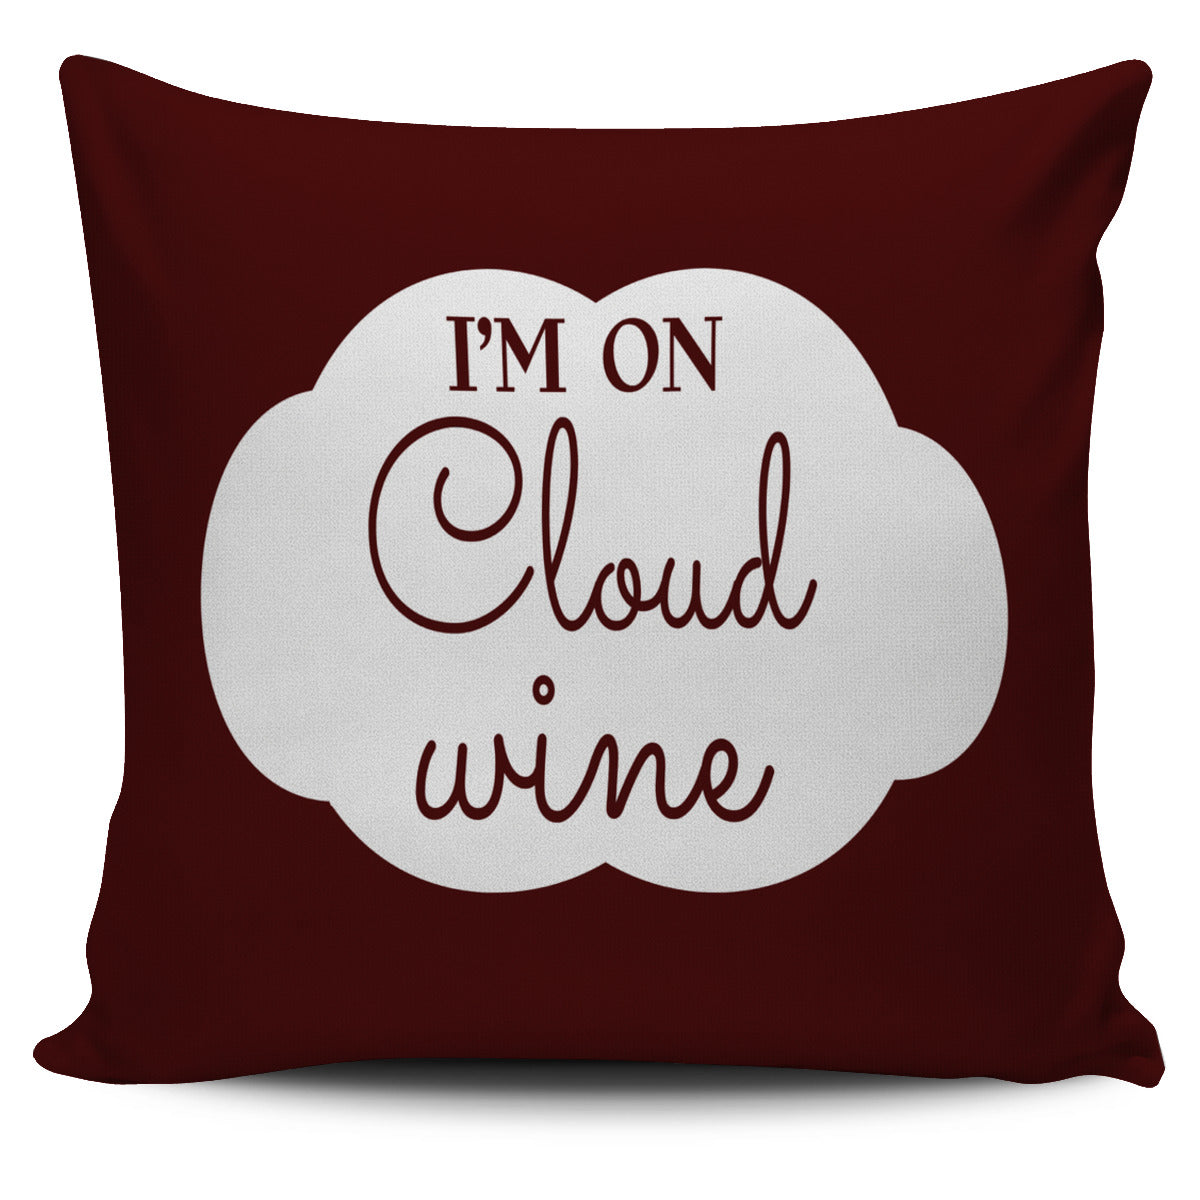 NP Cloud Wine Pillowcase